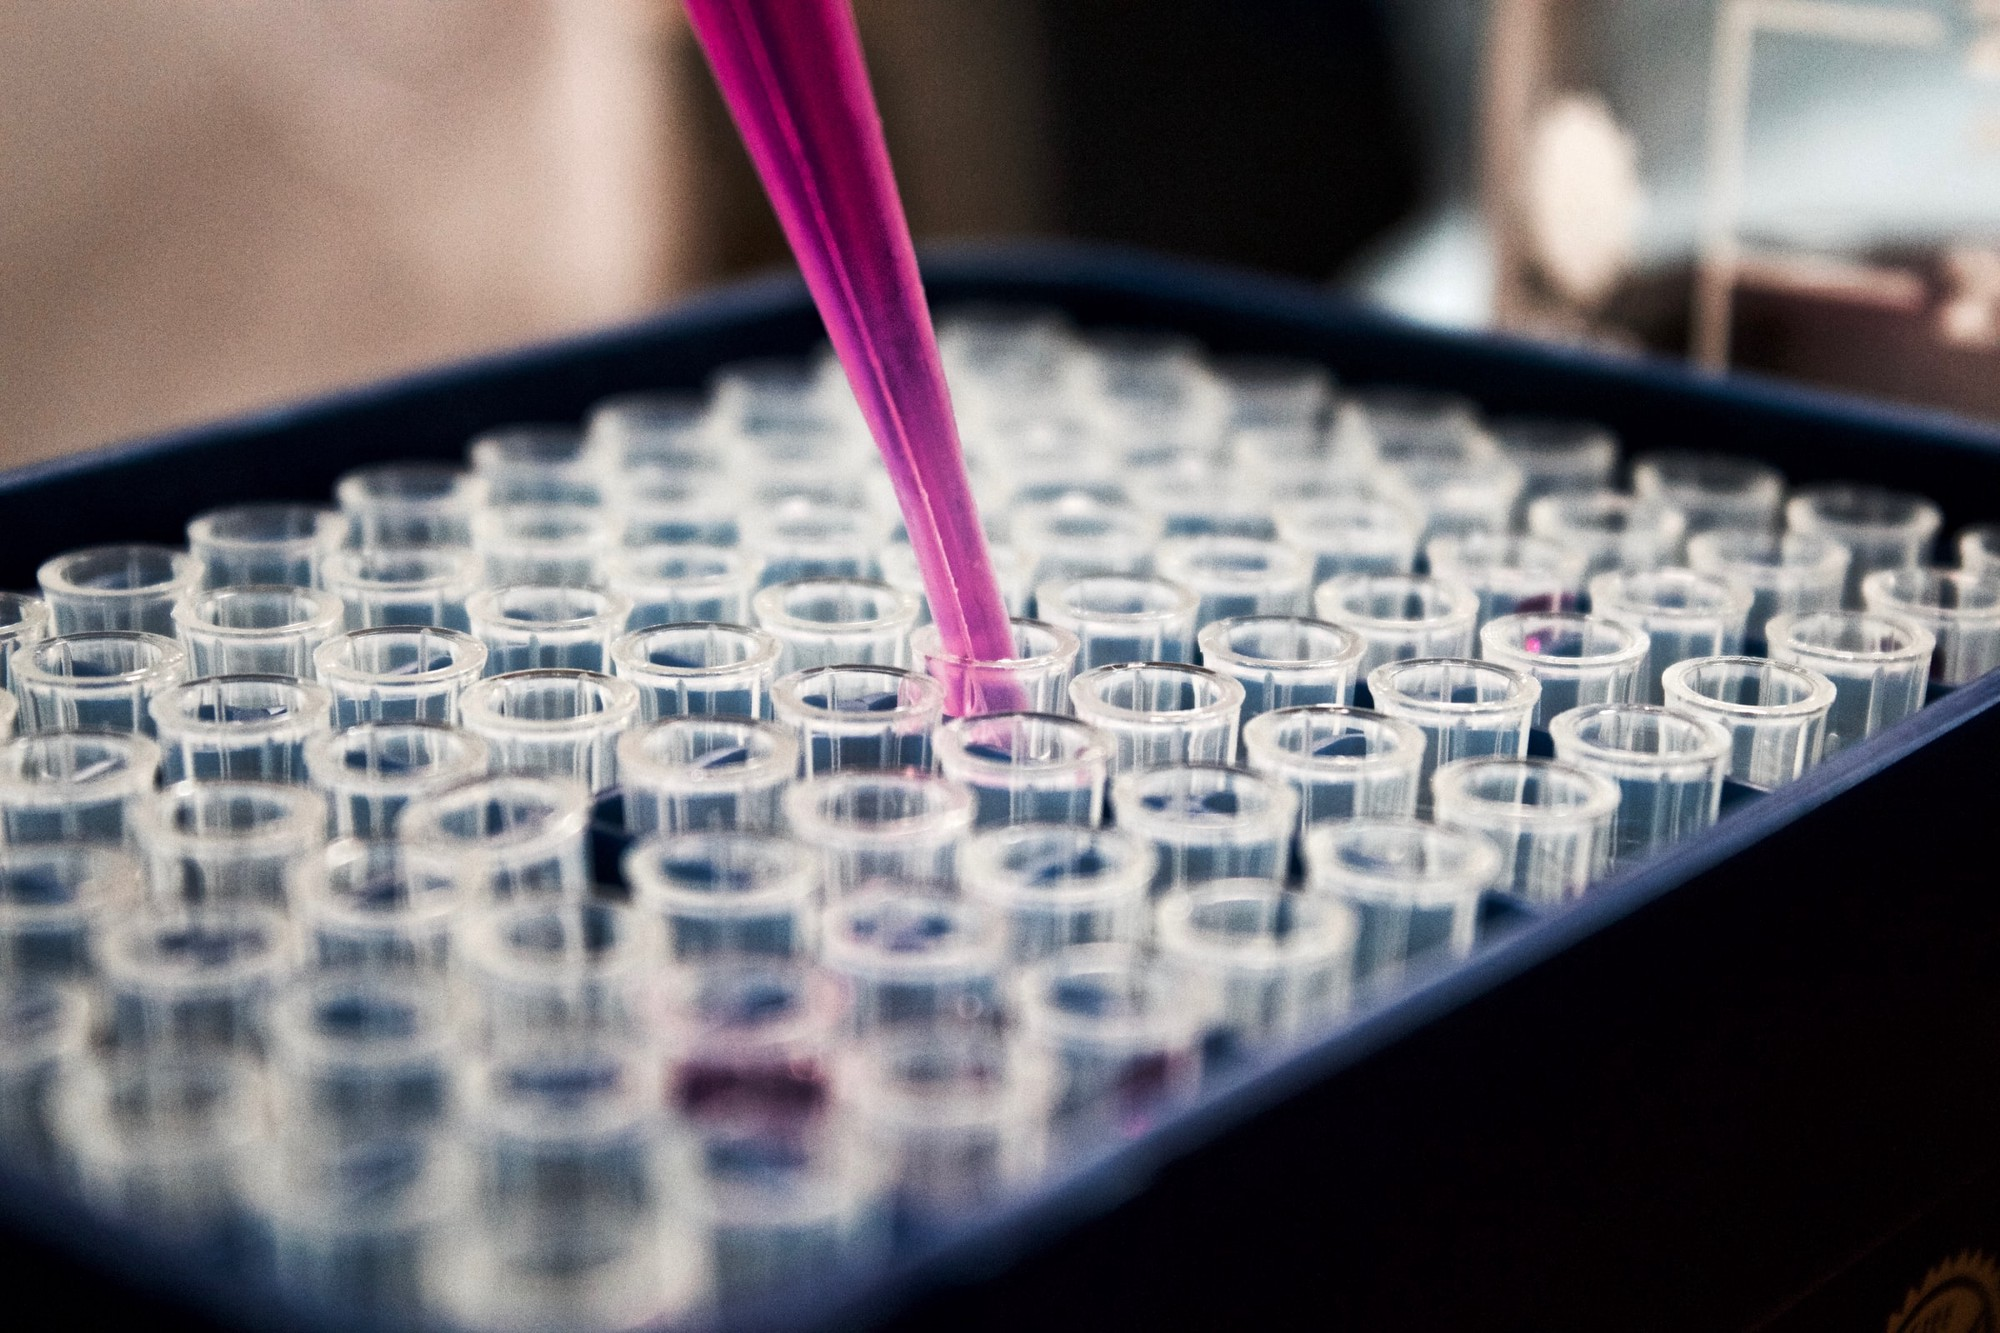 A purple pipette drops liquid into many small test tubes in what seems like a vaccine laboratory.